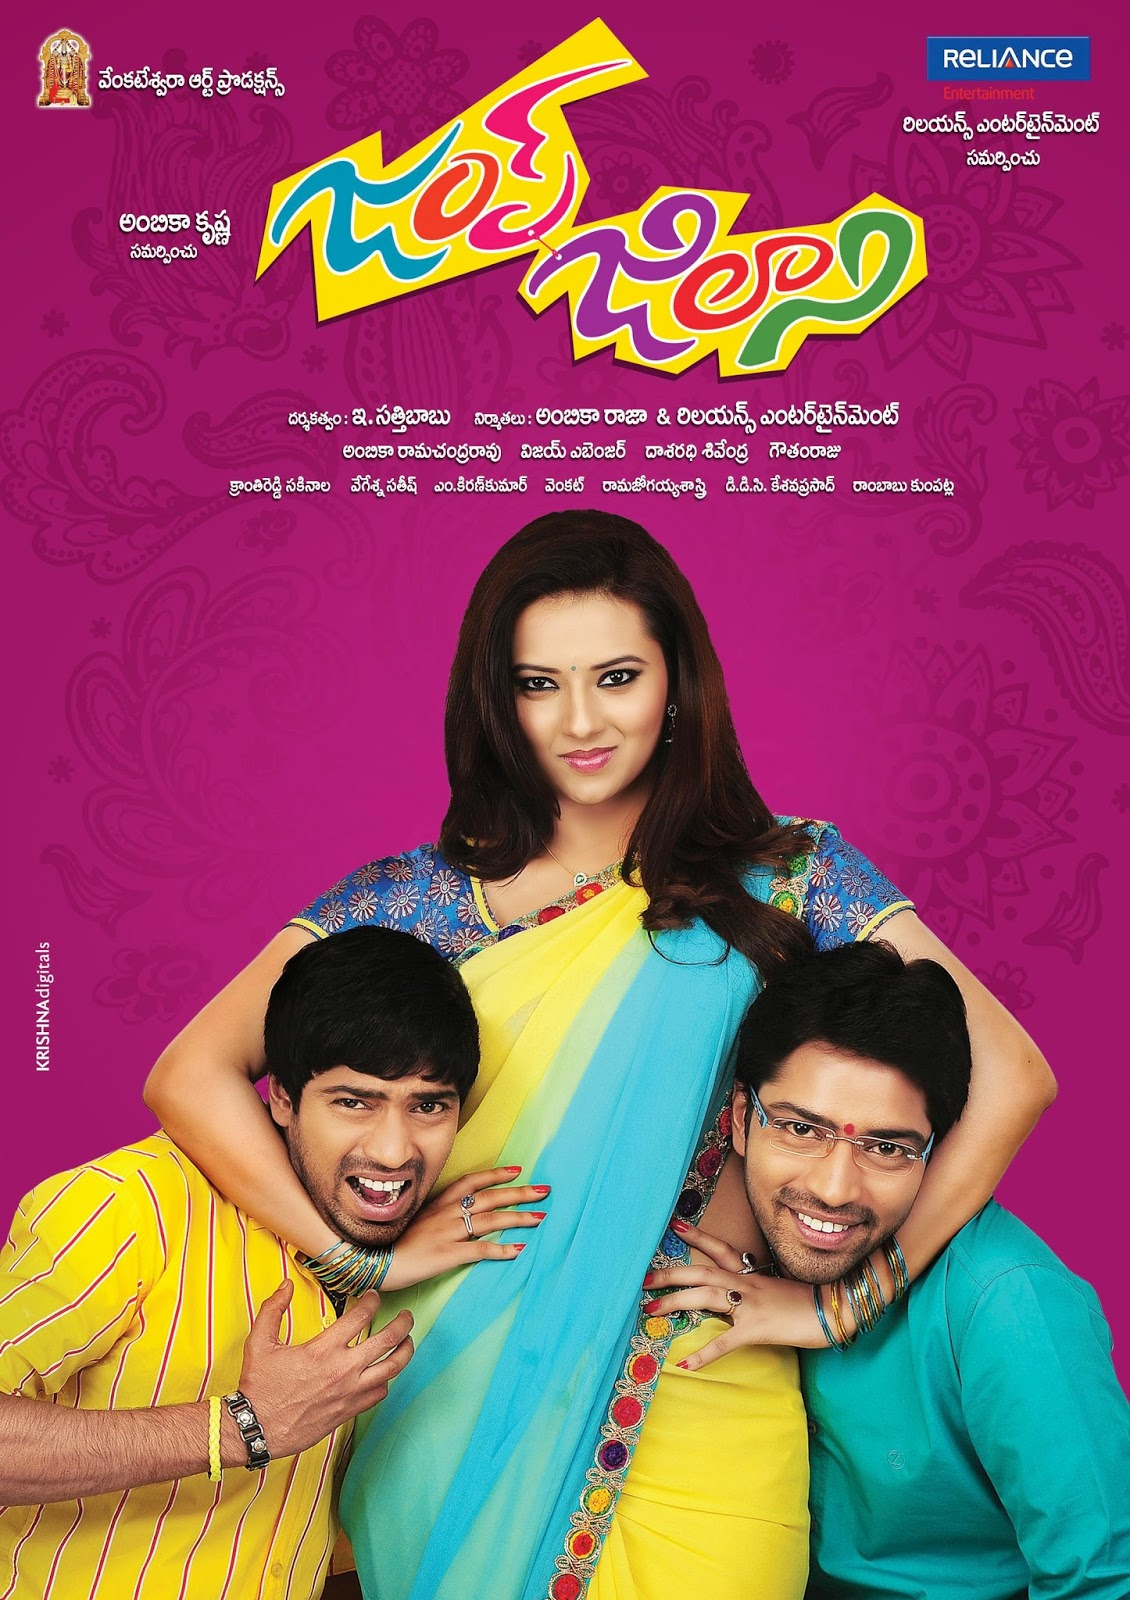 Watch Jump Jelani (2014) DVDScr Telugu Full Movie Watch Online For Free Download